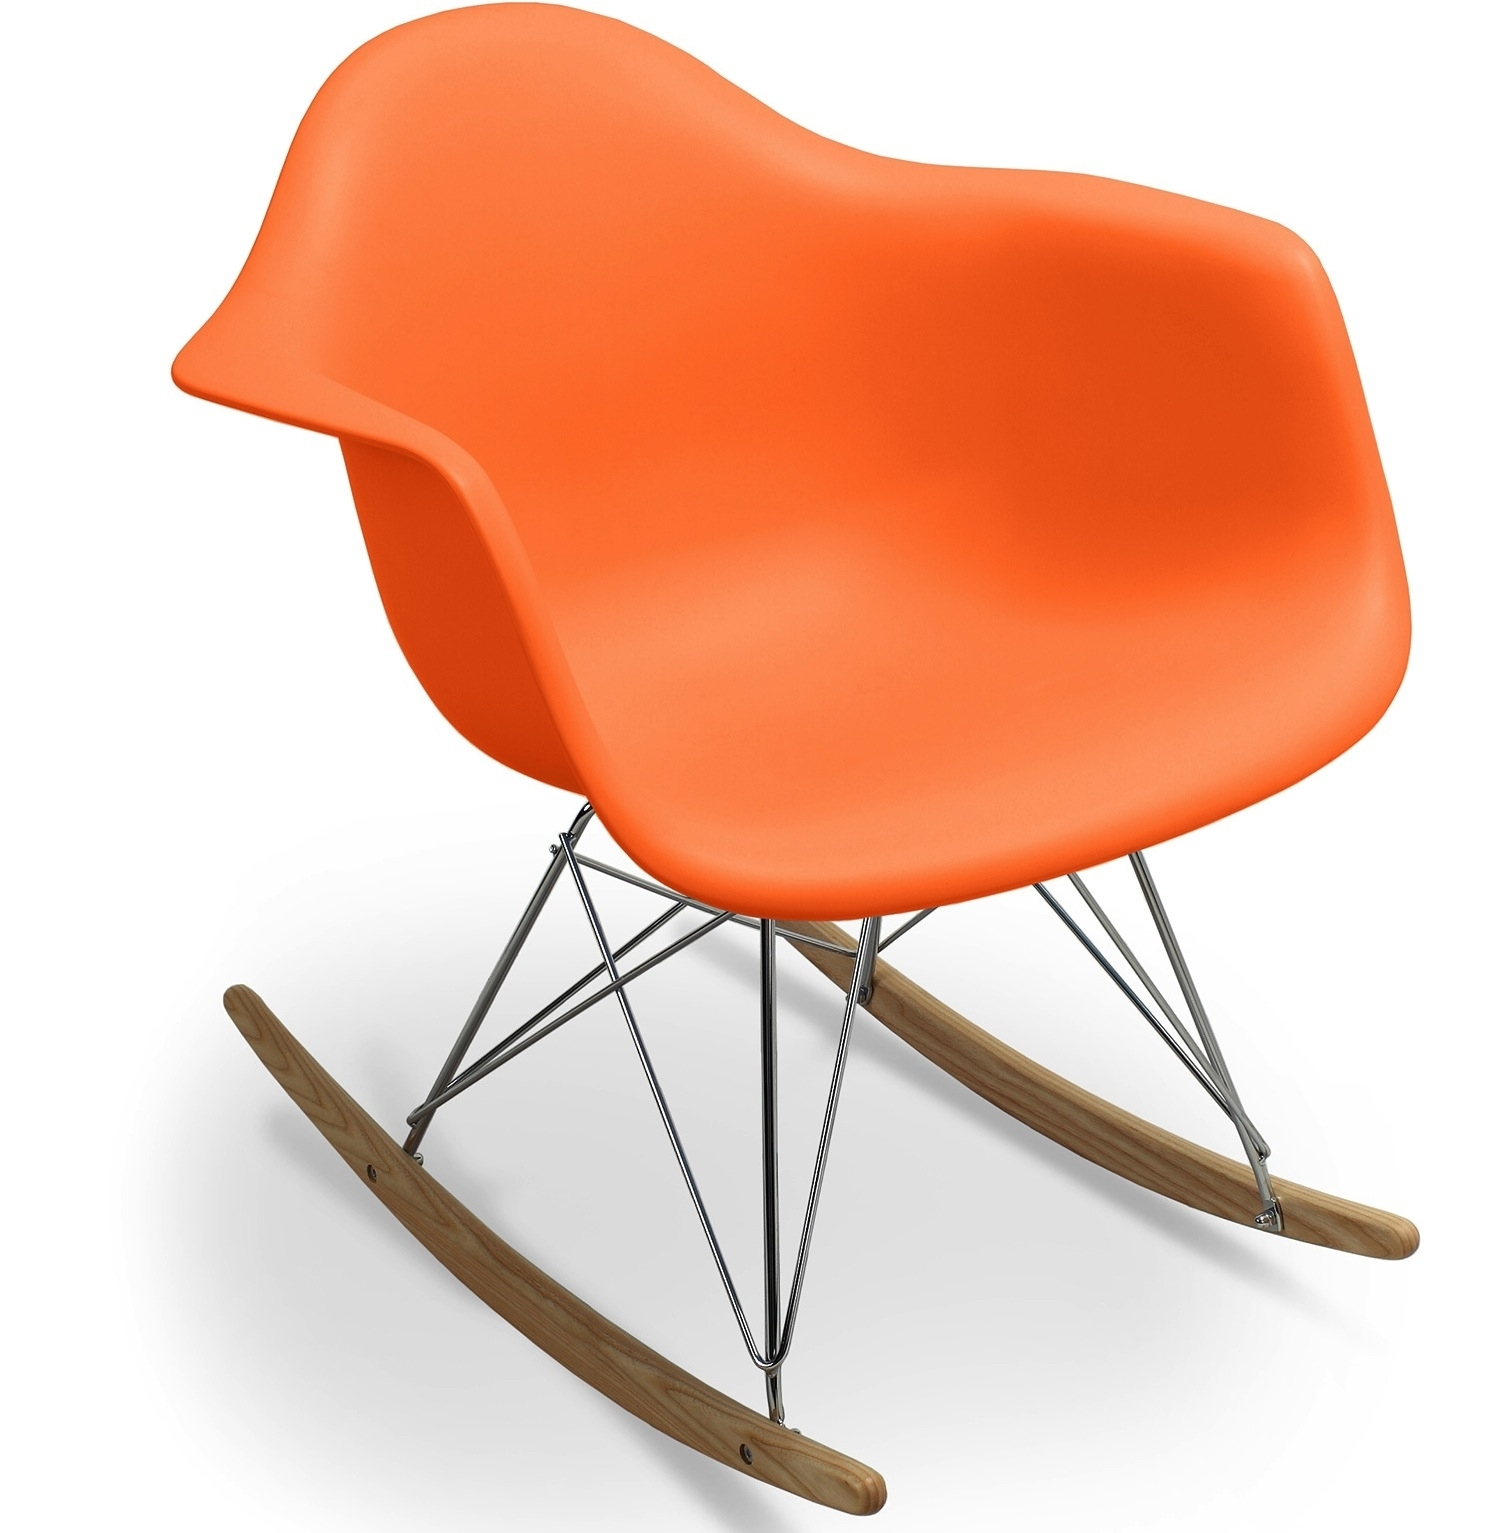 fauteuil bascule orange mat inspir charles eames. Black Bedroom Furniture Sets. Home Design Ideas